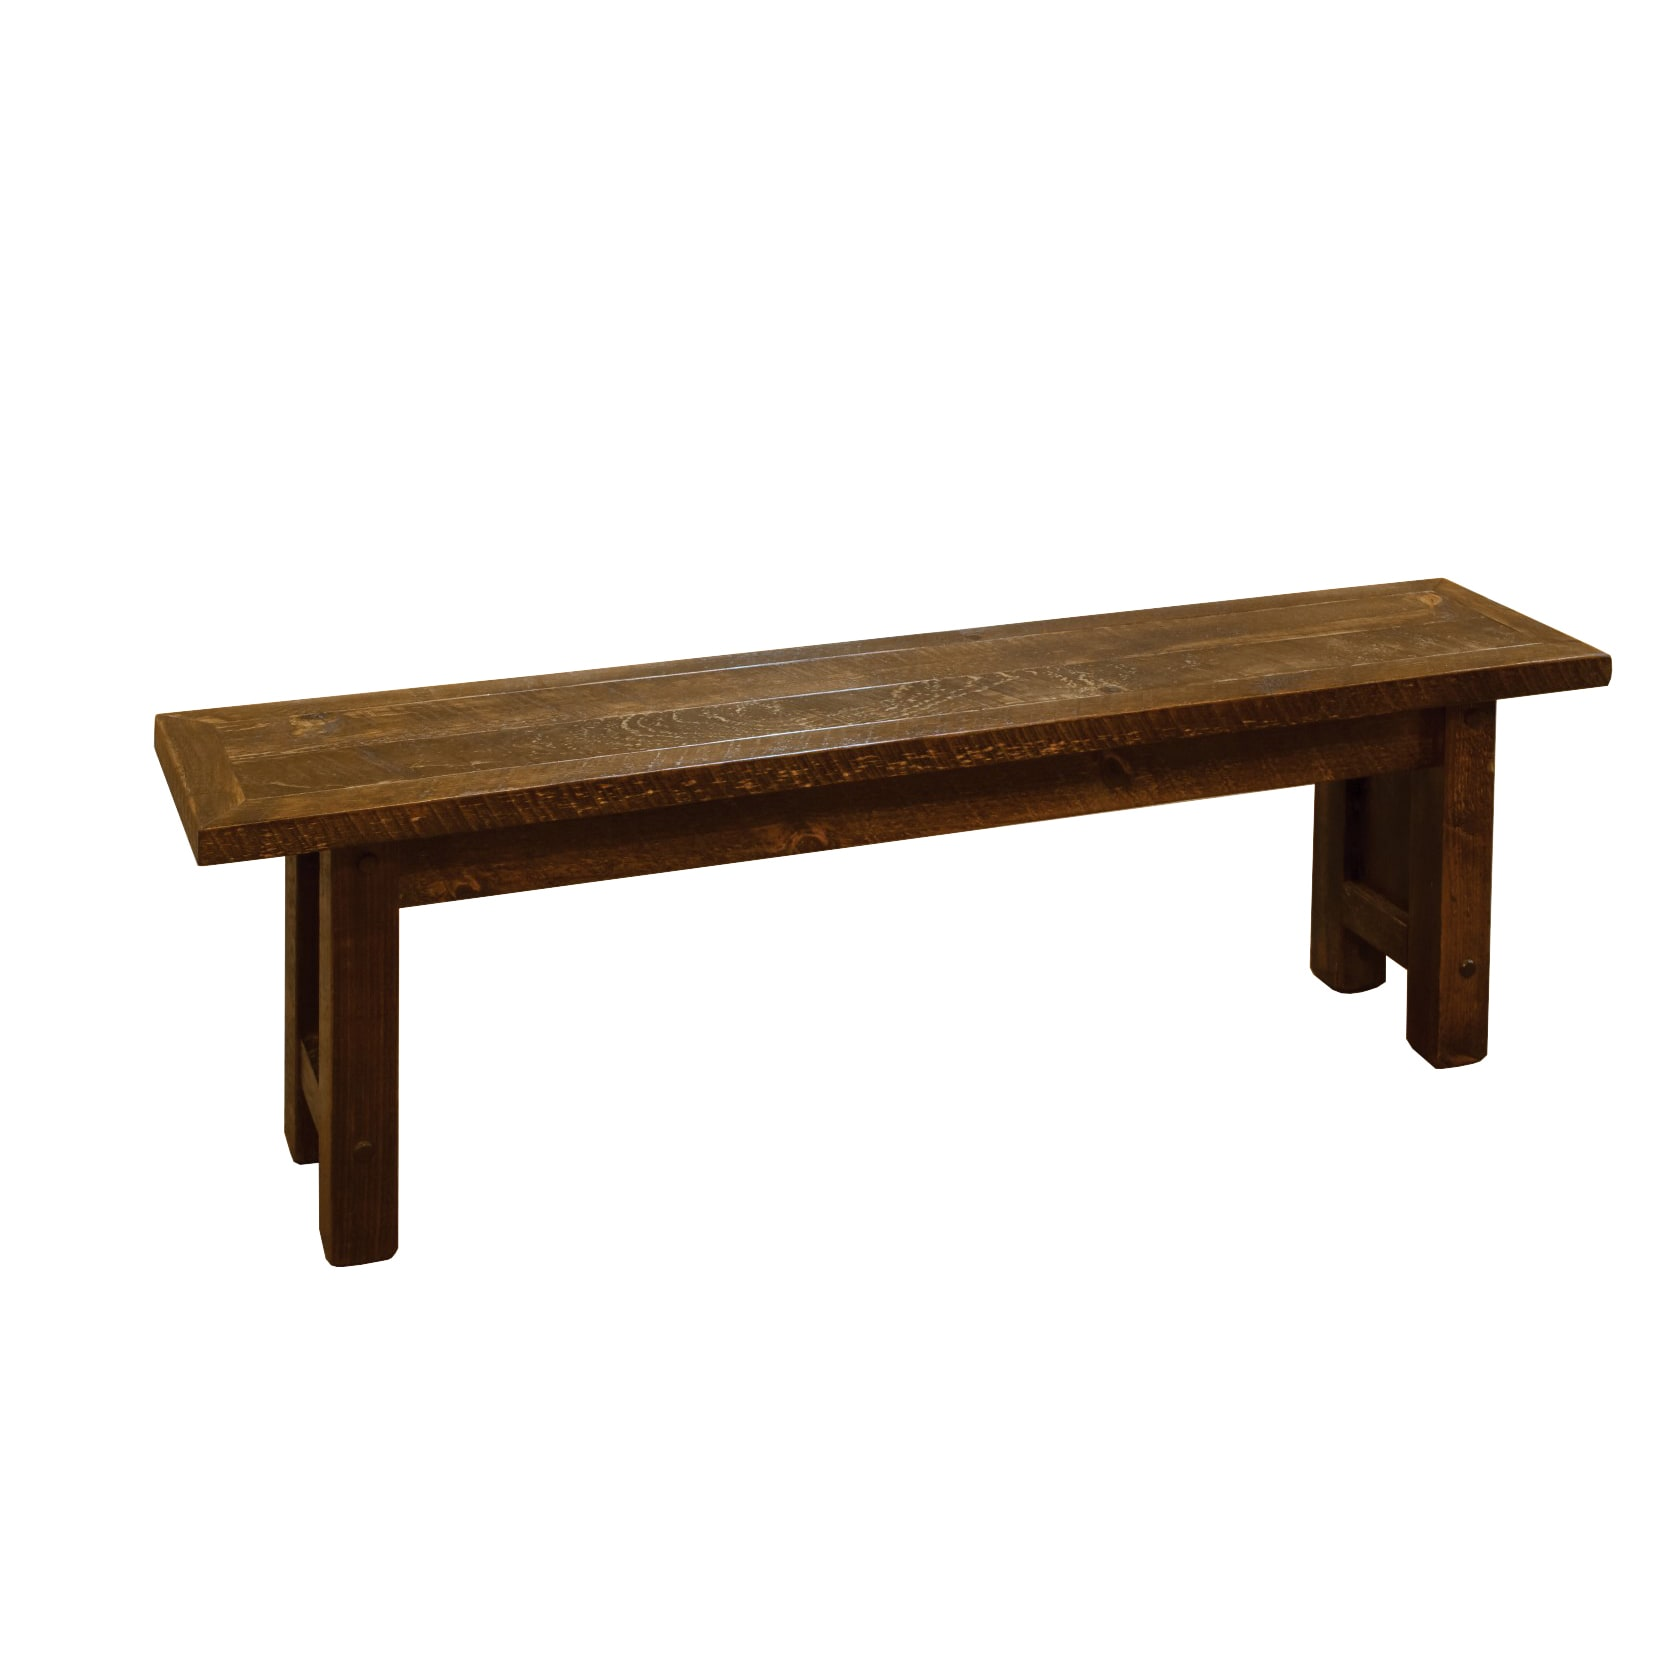 Marvelous Barn Wood Style Timber Peg Dining Hall Bench Multiple Sizes Available Ibusinesslaw Wood Chair Design Ideas Ibusinesslaworg